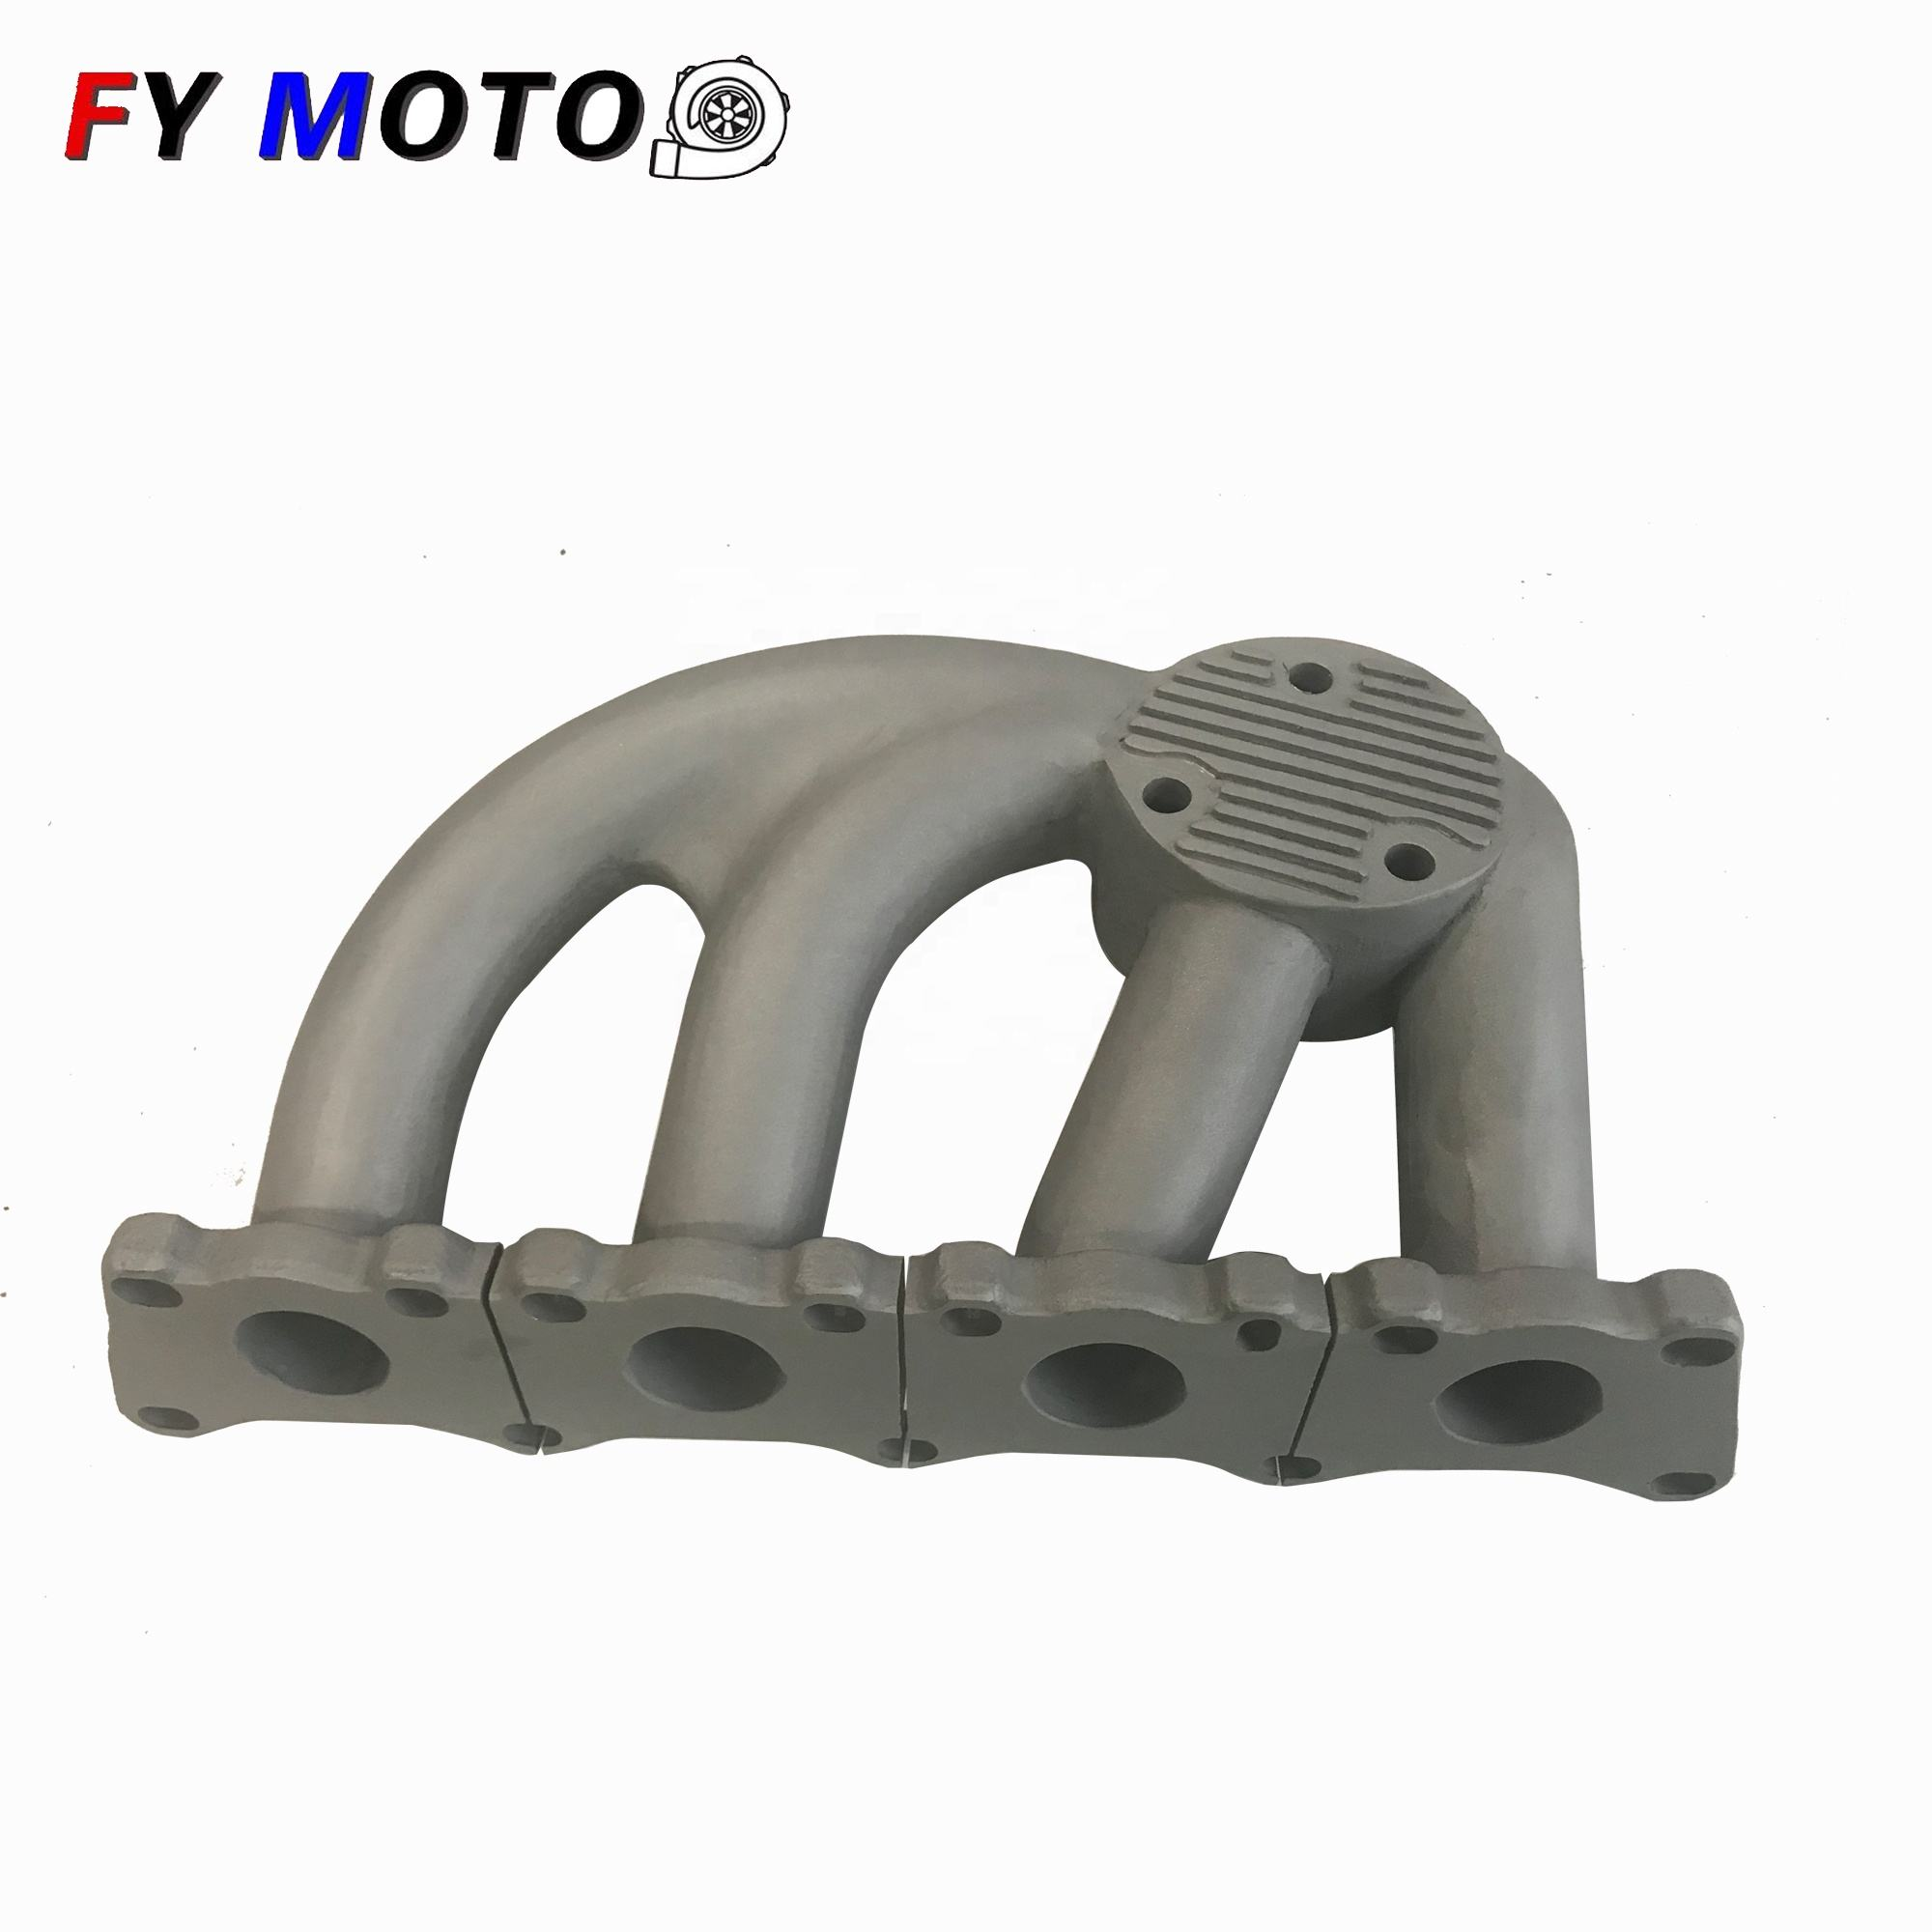 for Aud S3 8P TT 8N | Seat Leon Cupra R 1.8T Cast stainless steel Turbo Exhaust Manifold